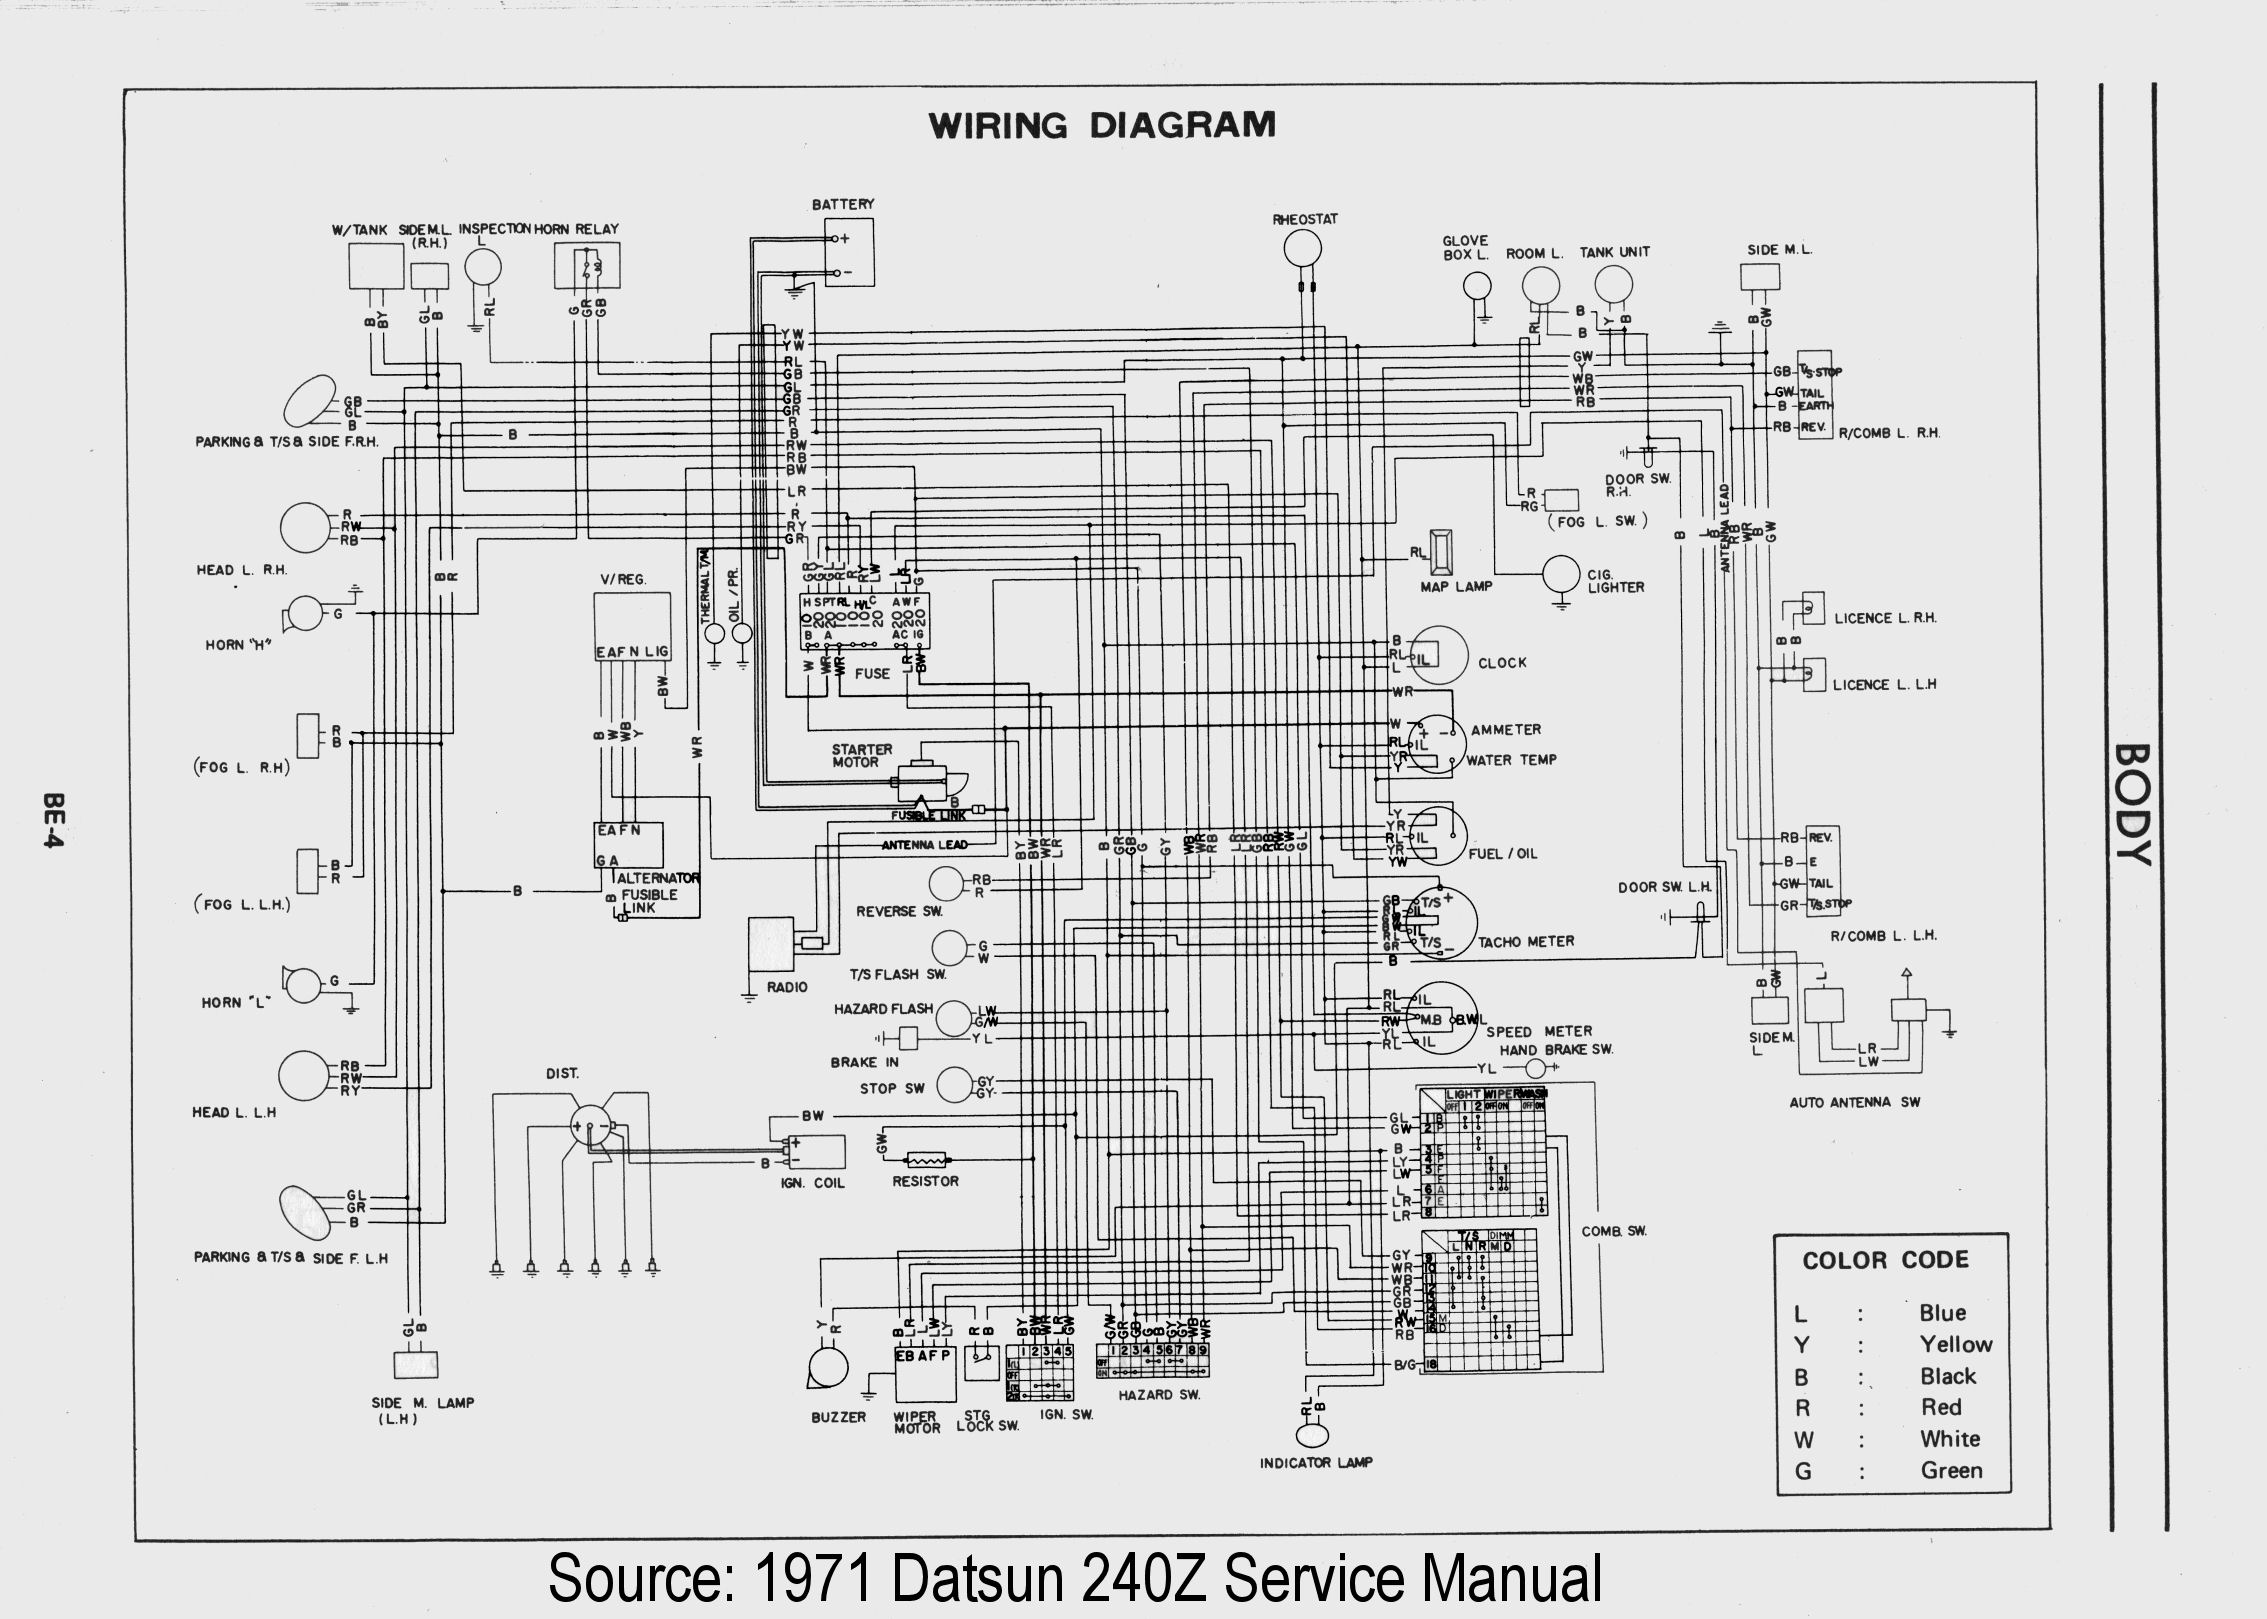 72 datsun 240z ignition wiring diagram online wiring diagram 240Z Brake Diagram 240z wiring diagram wiring diagram data schema 72 datsun 240z ignition wiring diagram